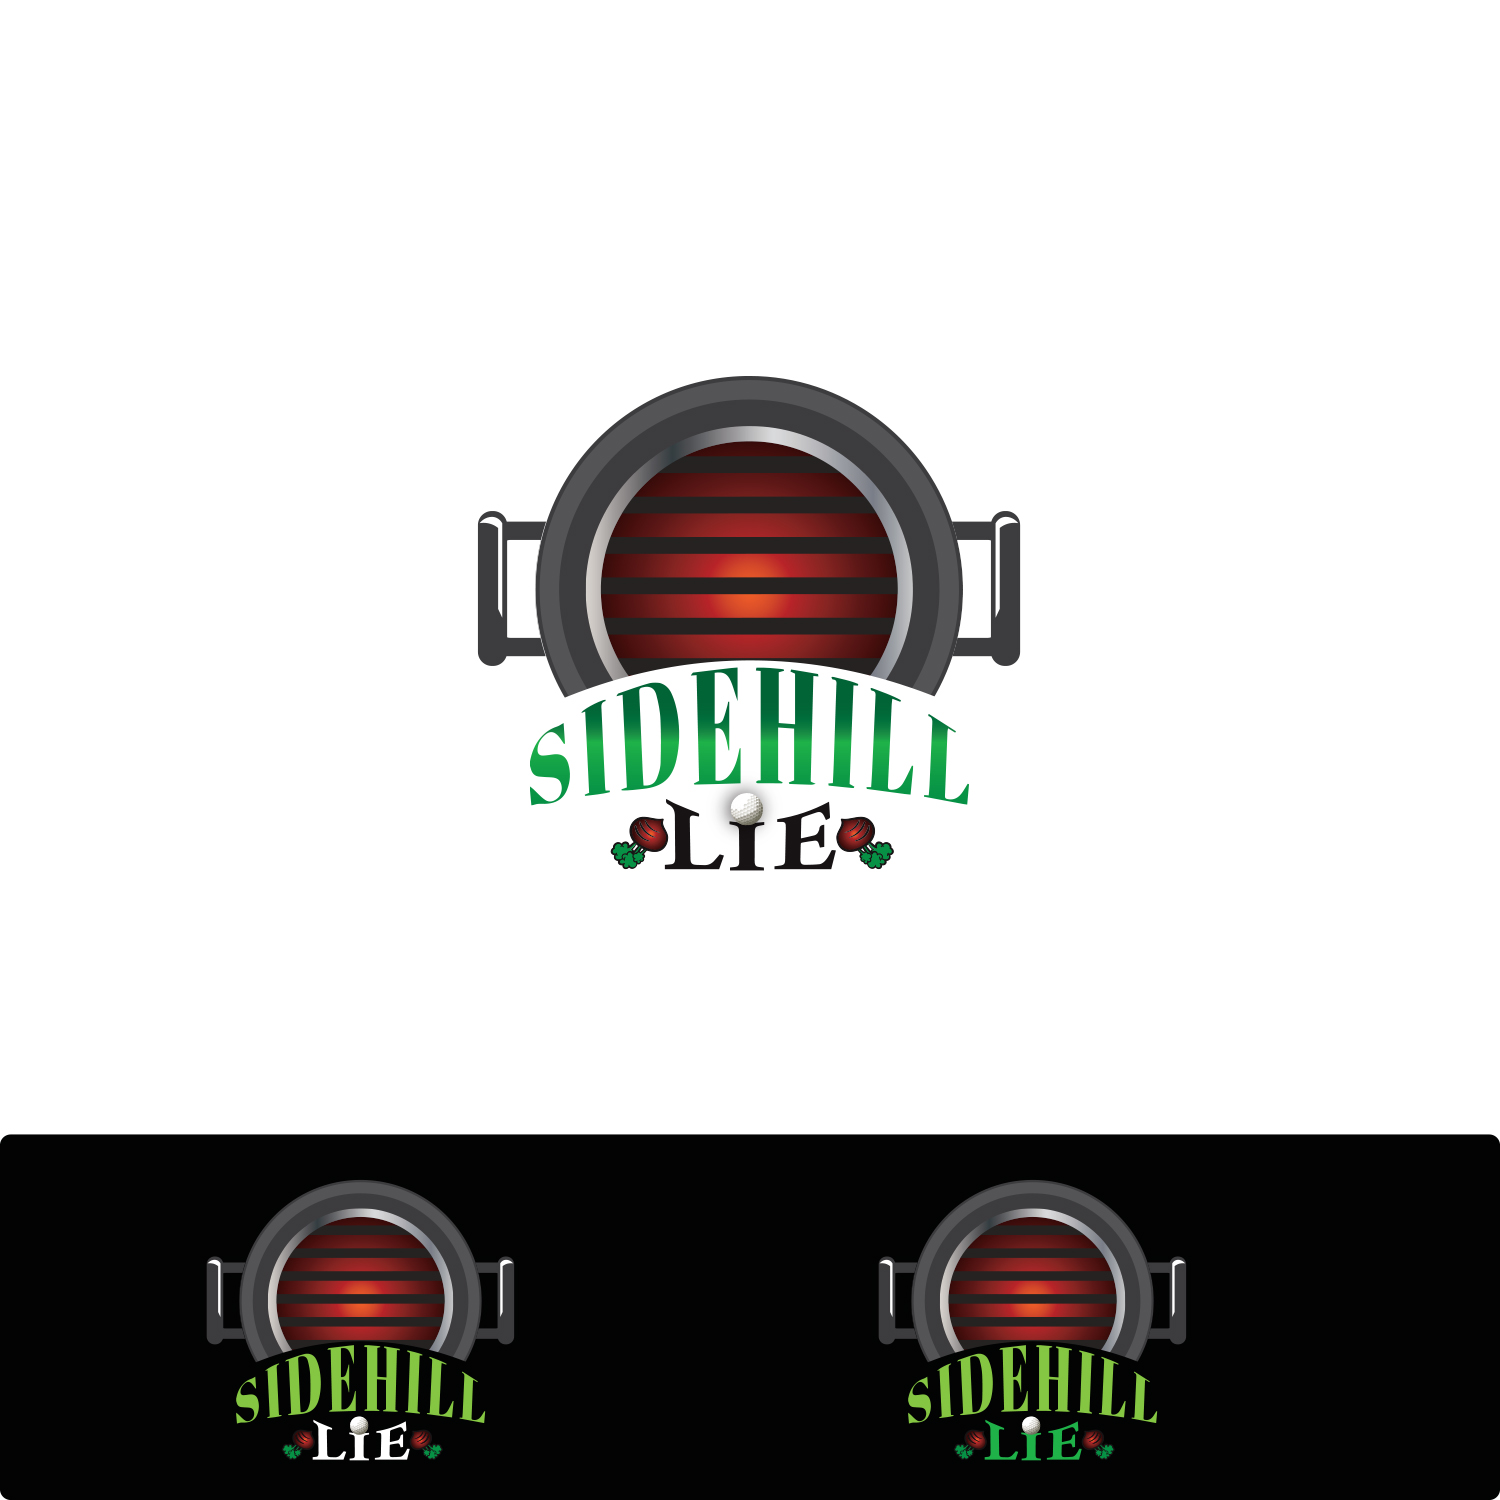 Sidehill Lie Logo by nadbook2323